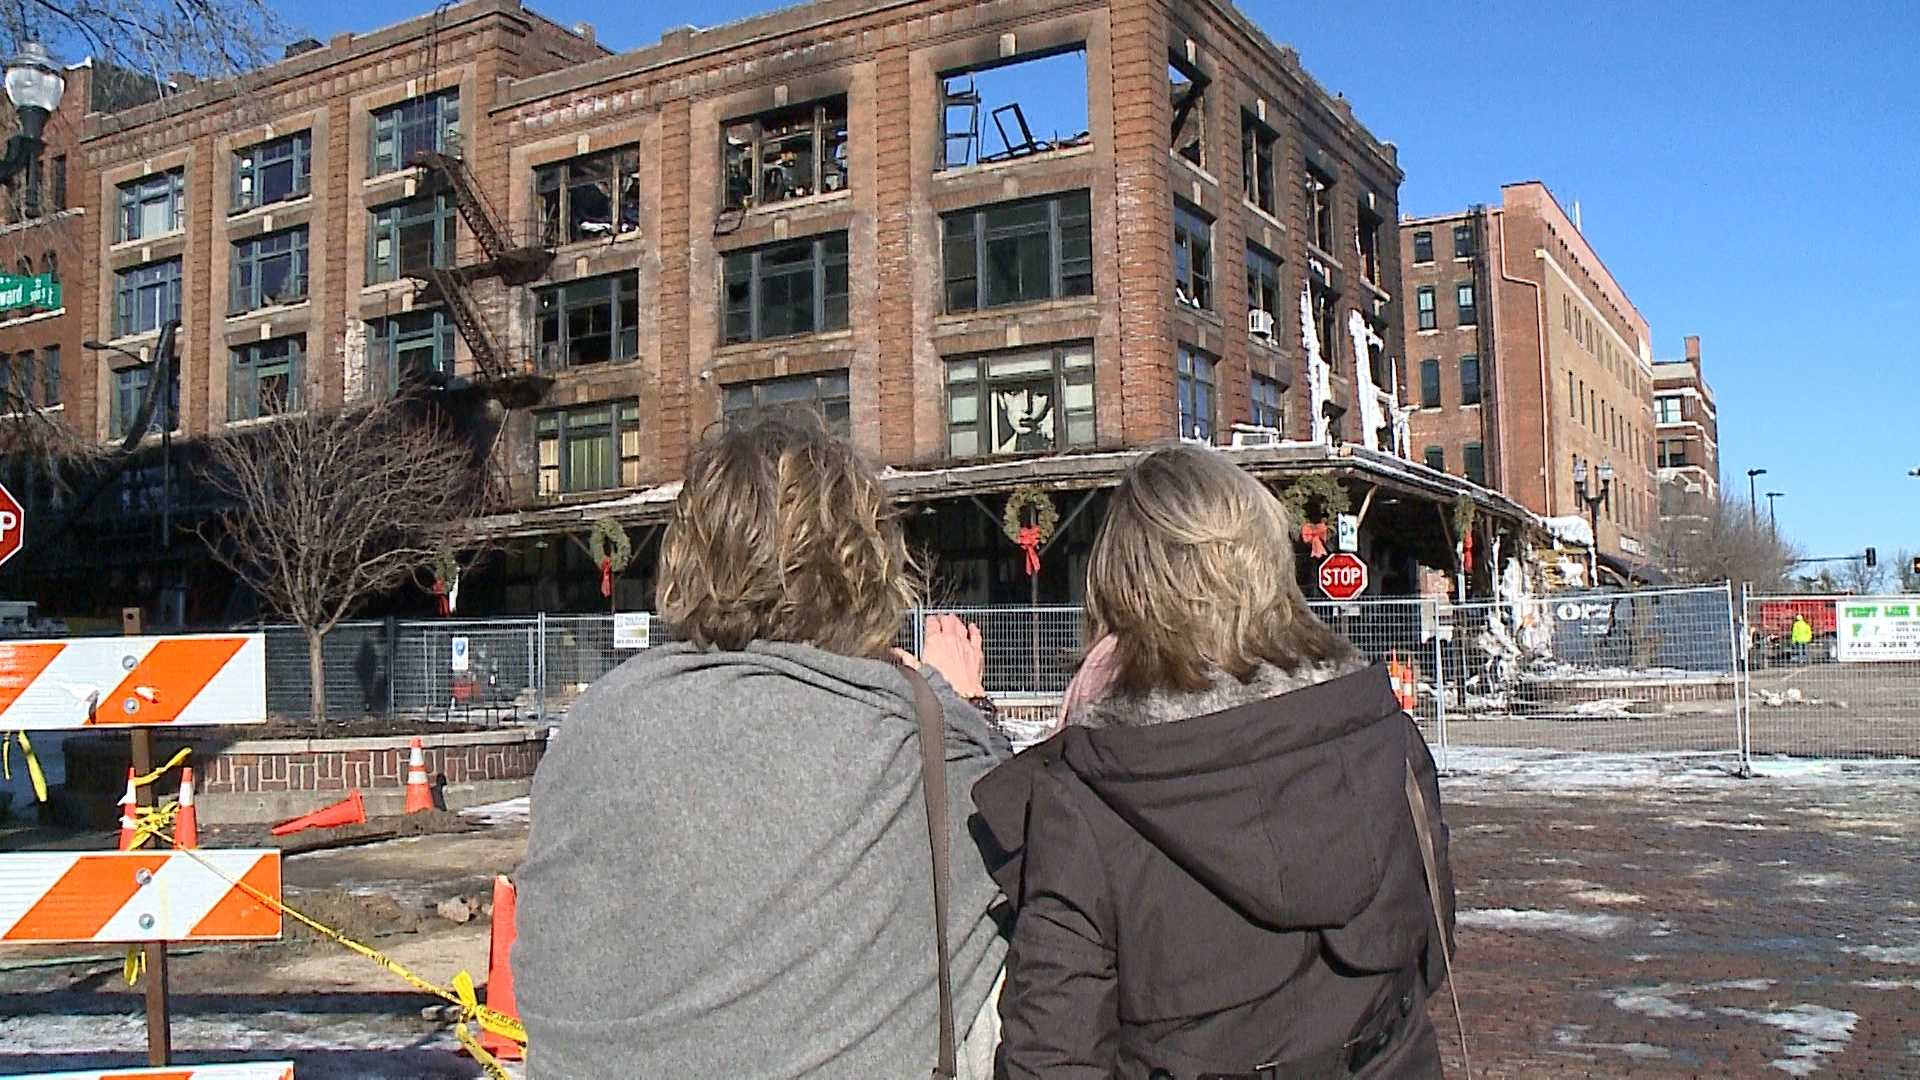 For the first time since the Old Market fire earlier this month, the owner of Nouvelle Eve is speaking out about that day and her future plans.